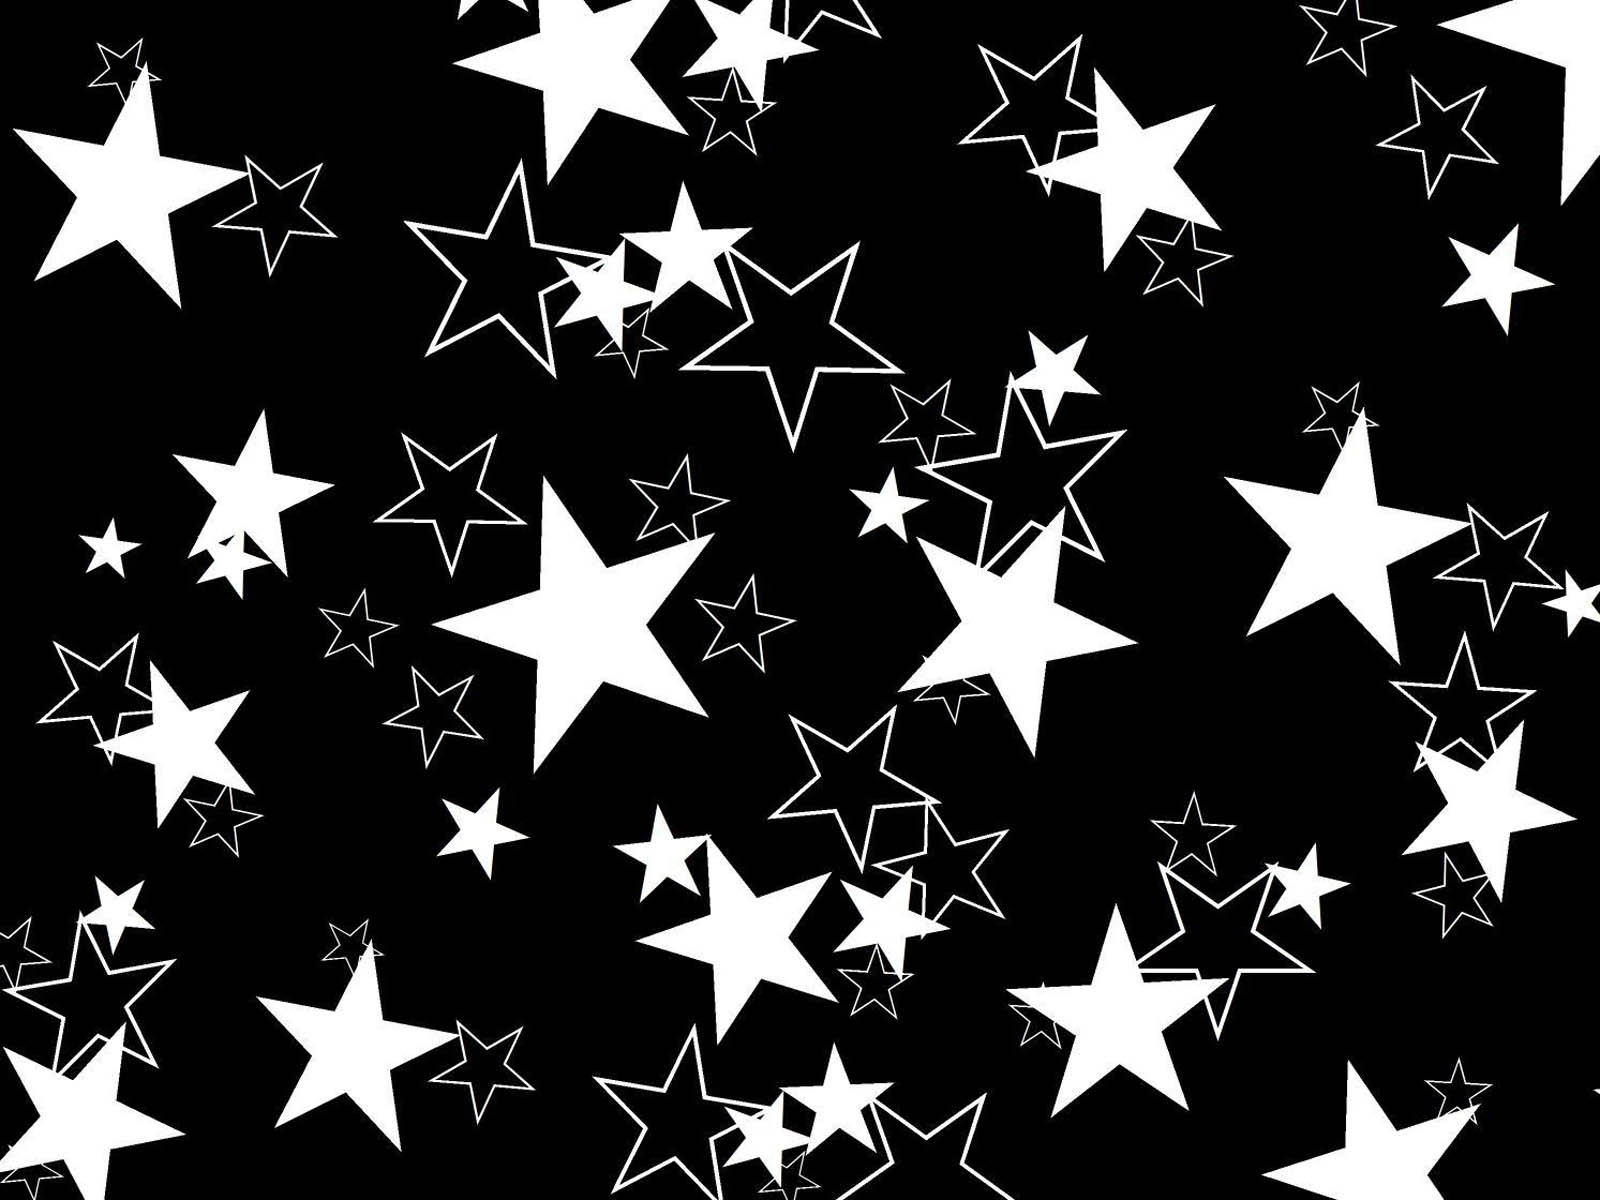 Wallpapers 3d stars wallpapers for Black and white 3d wallpaper